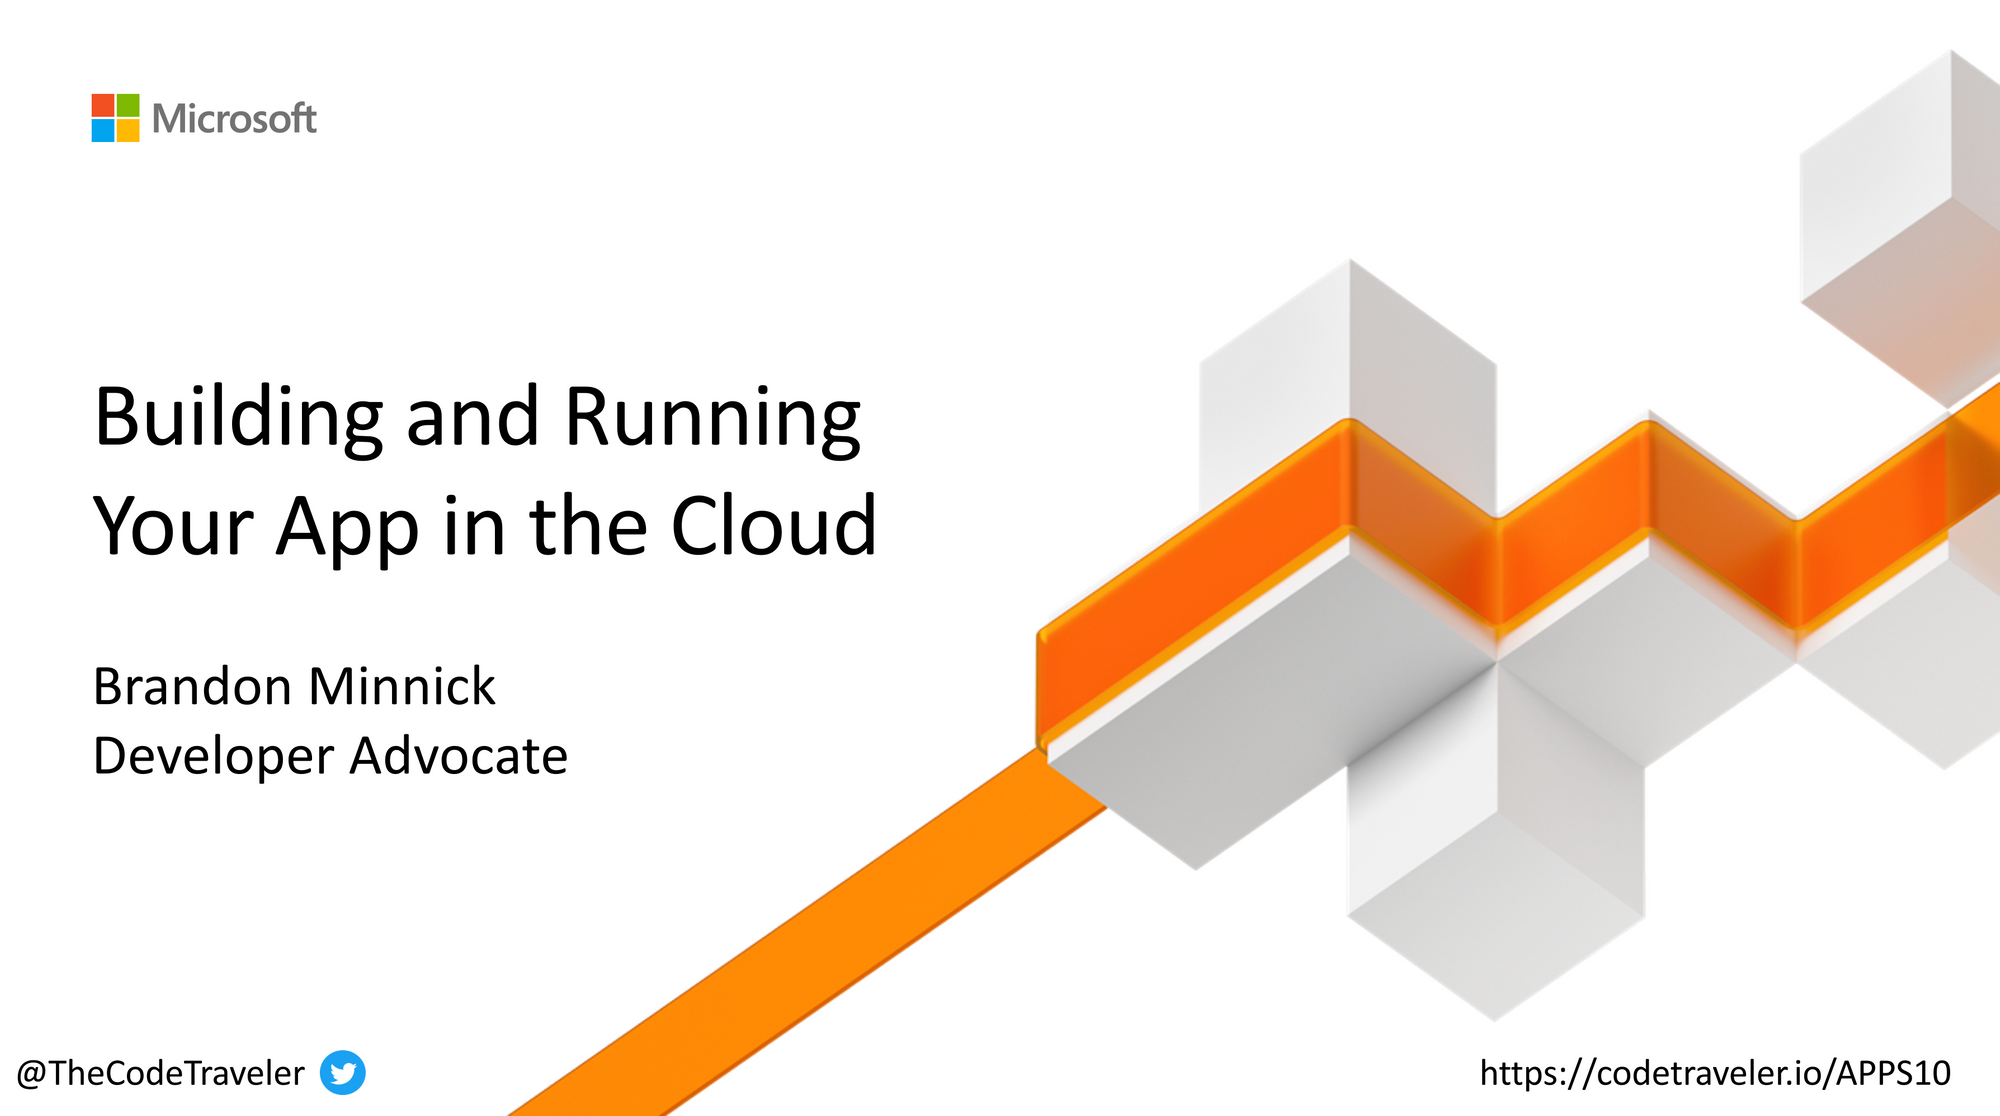 Building and Running Your App in the Cloud